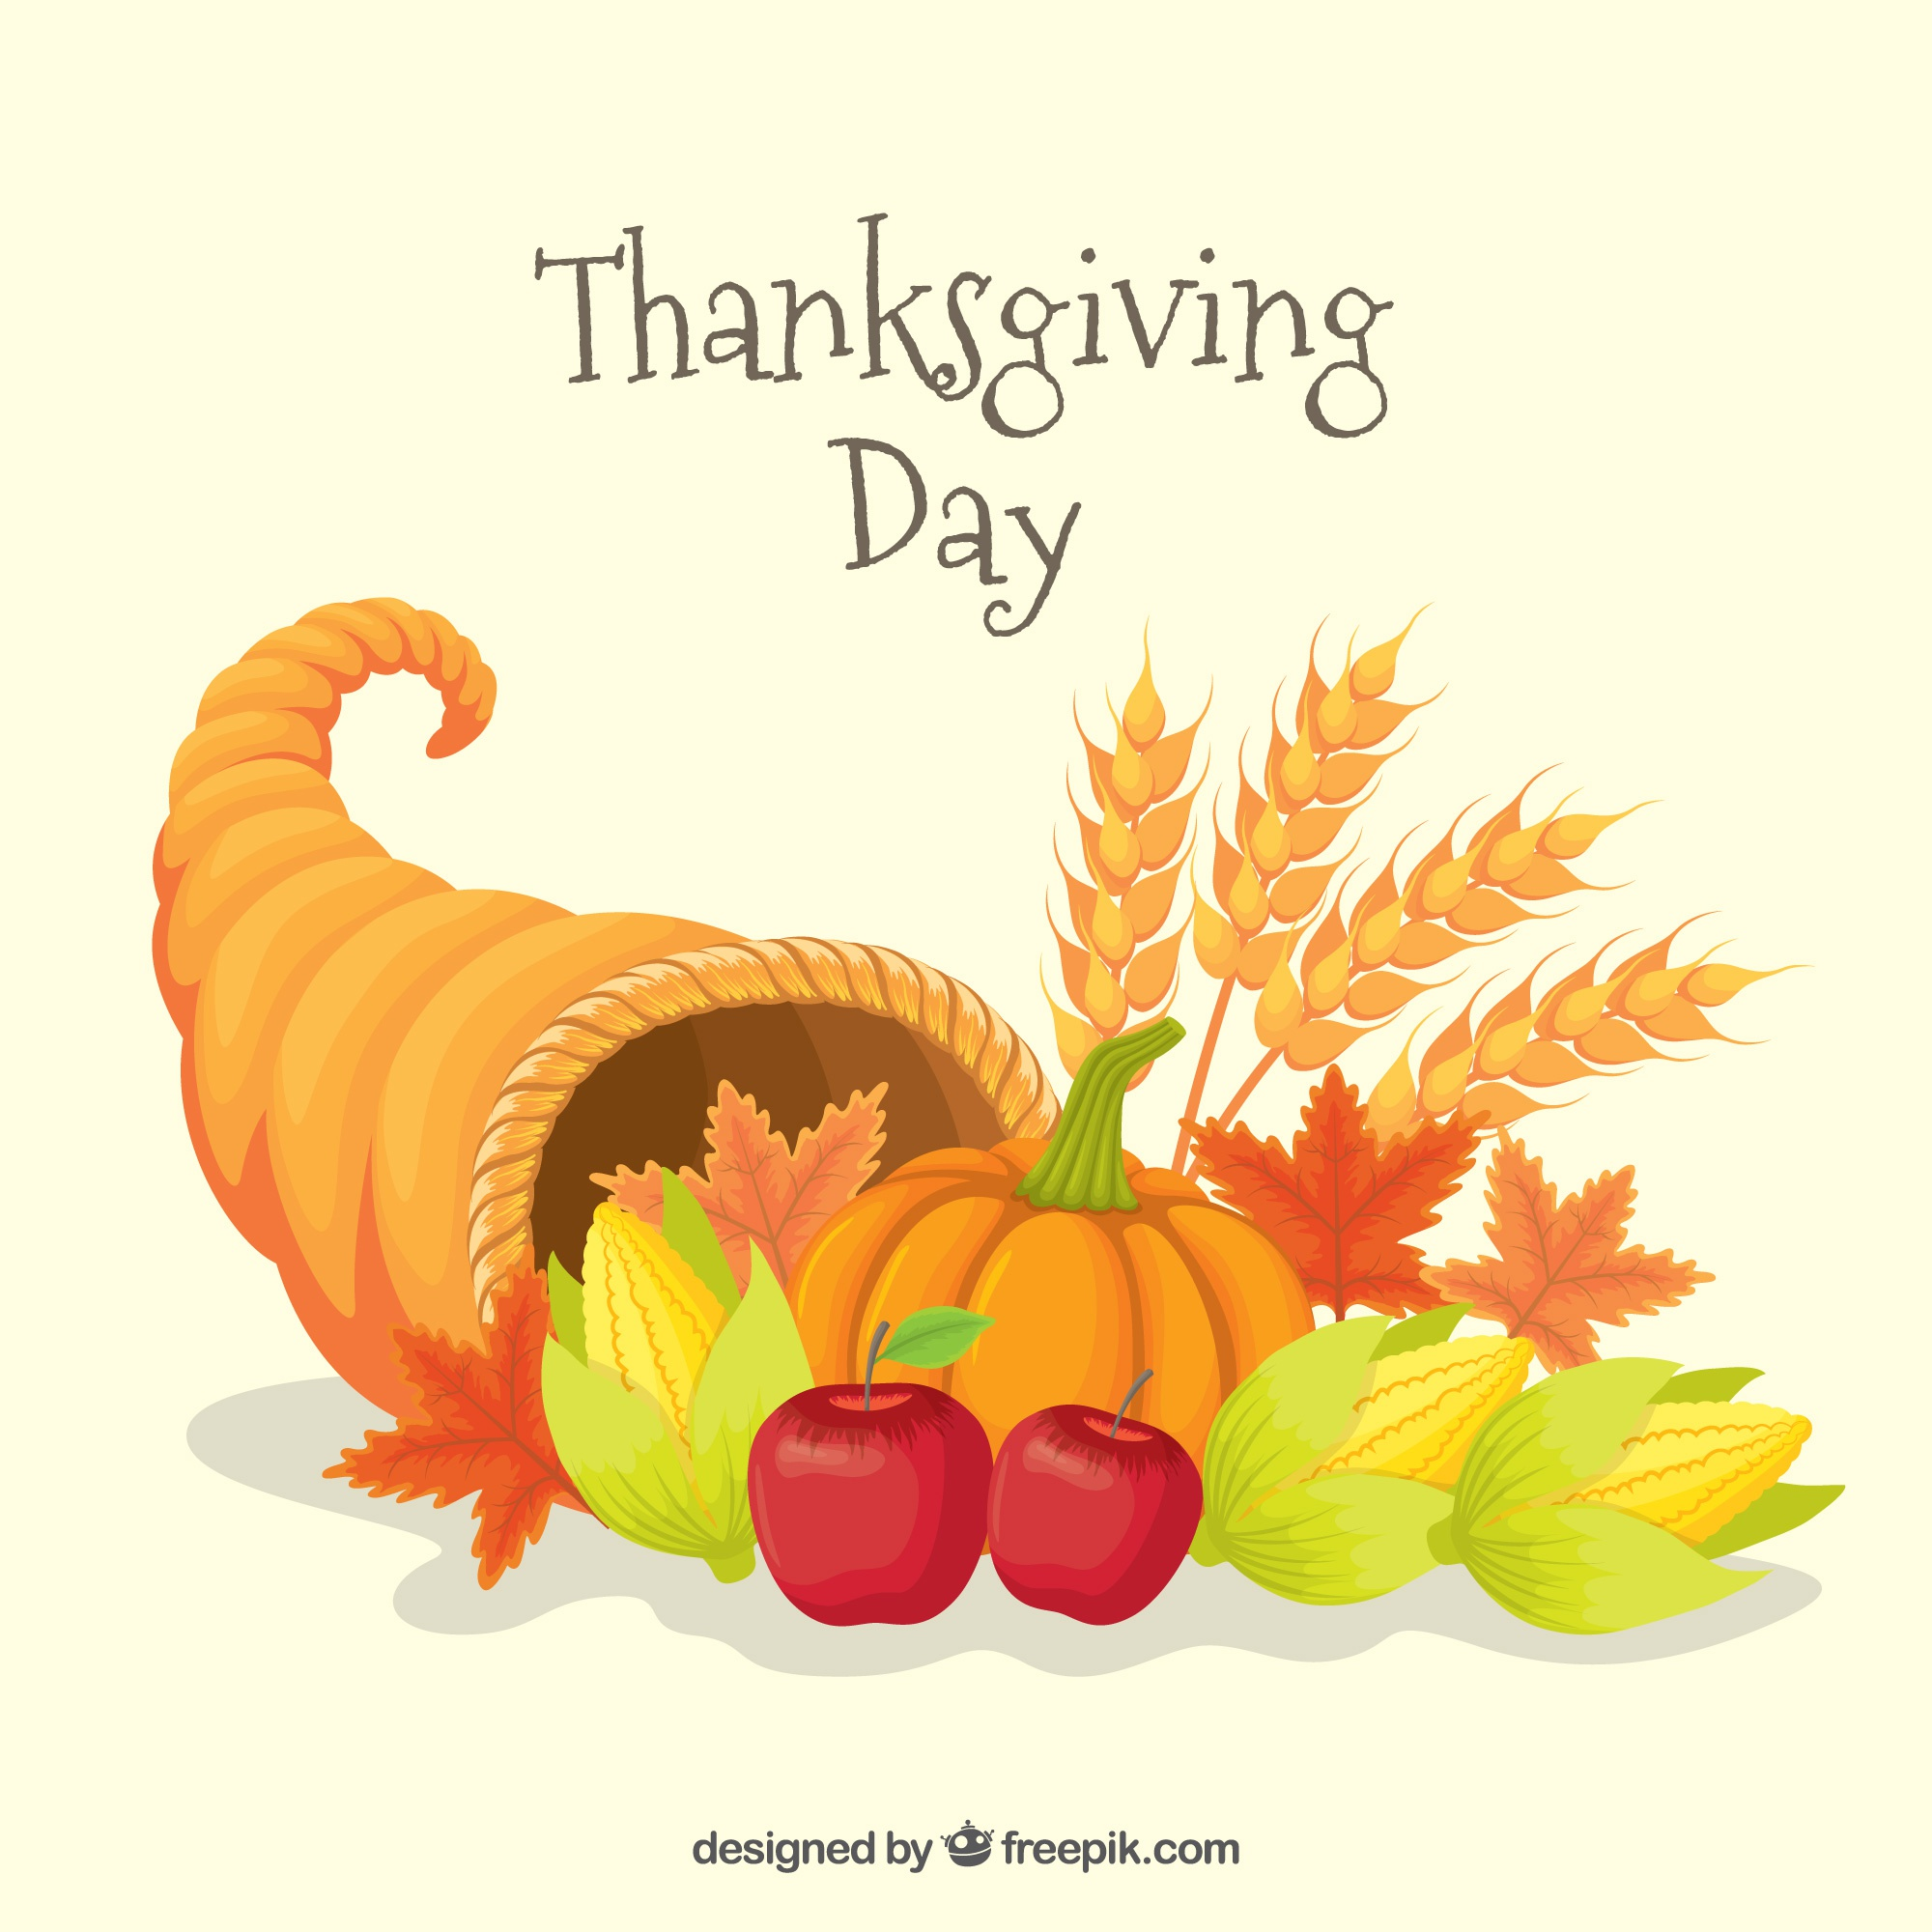 Background with natural elements of thanksgiving